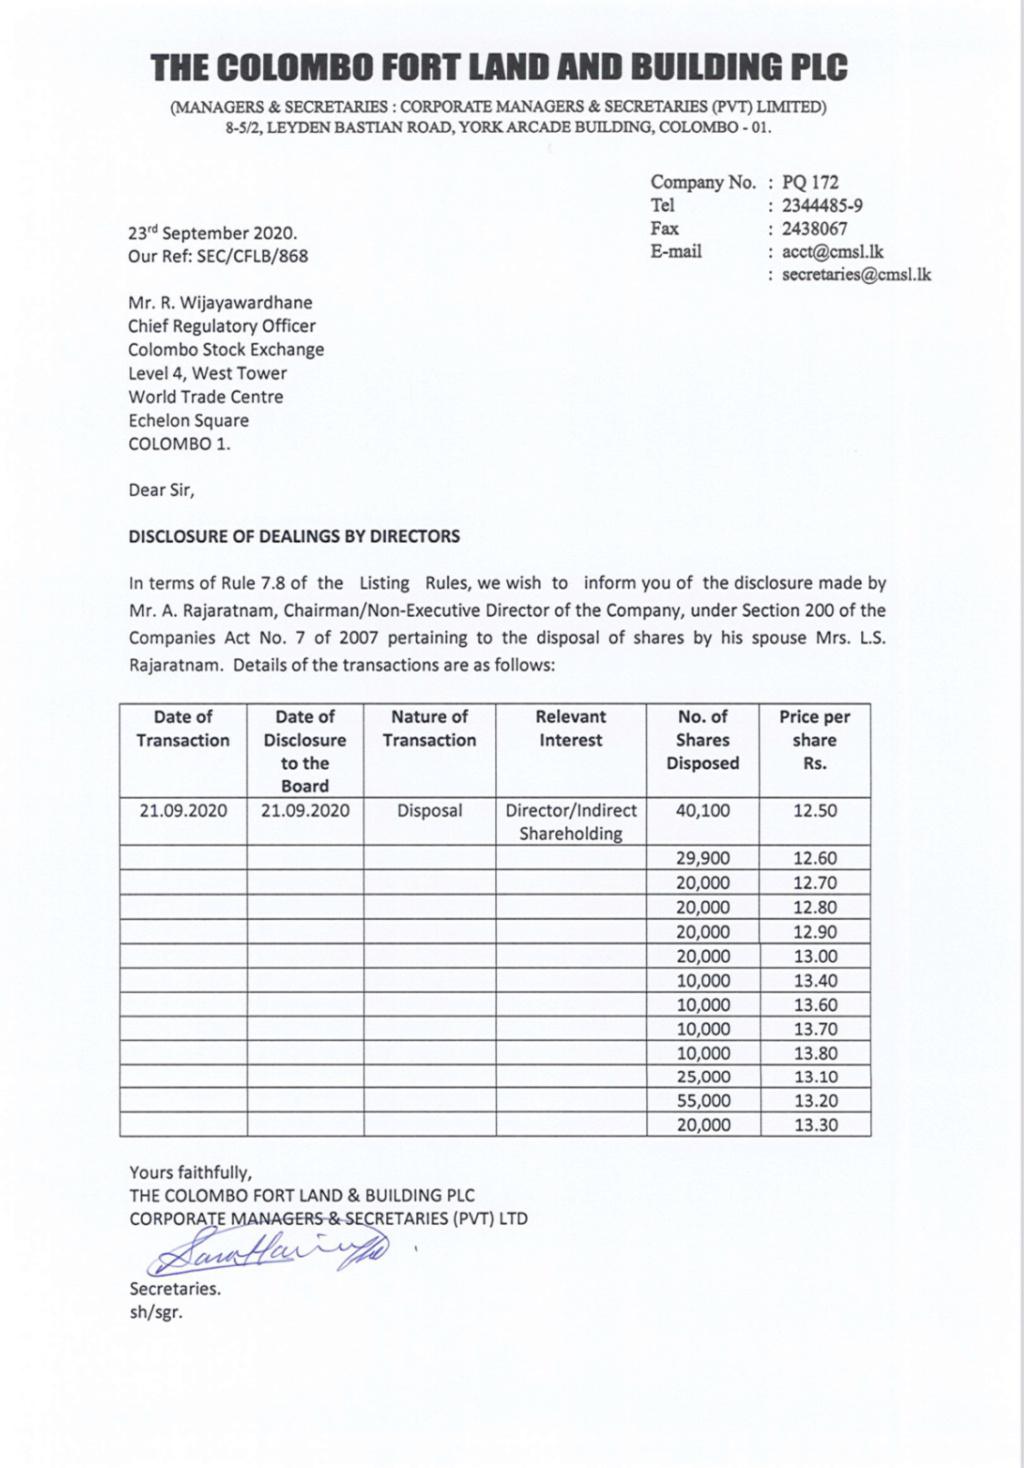 THE COLOMBO FORT LAND & BUILDING PLC (CFLB.N0000) - Page 9 2dbb9210